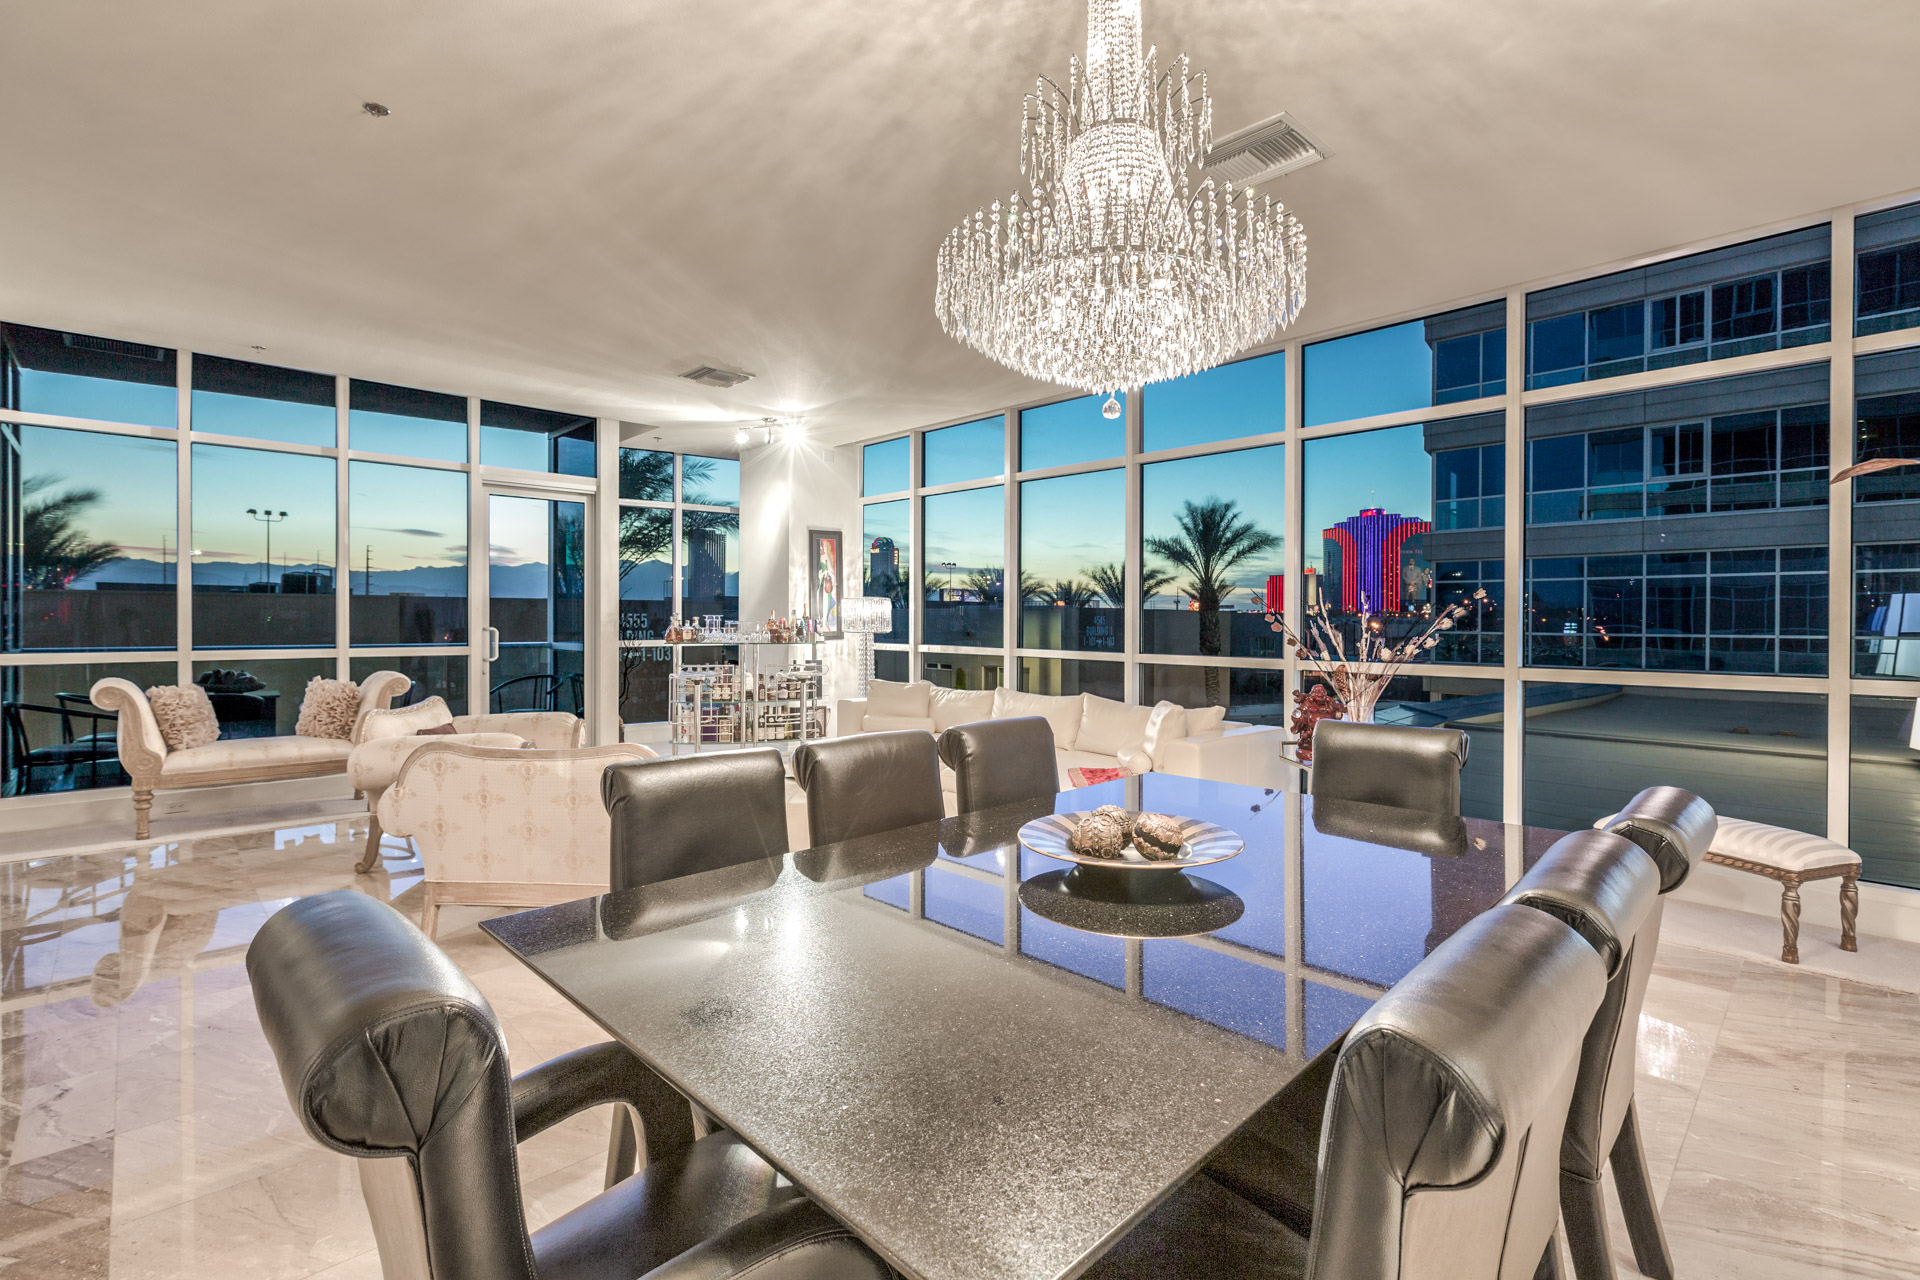 las vegas penthouses for sale – the ultimate luxury condo search